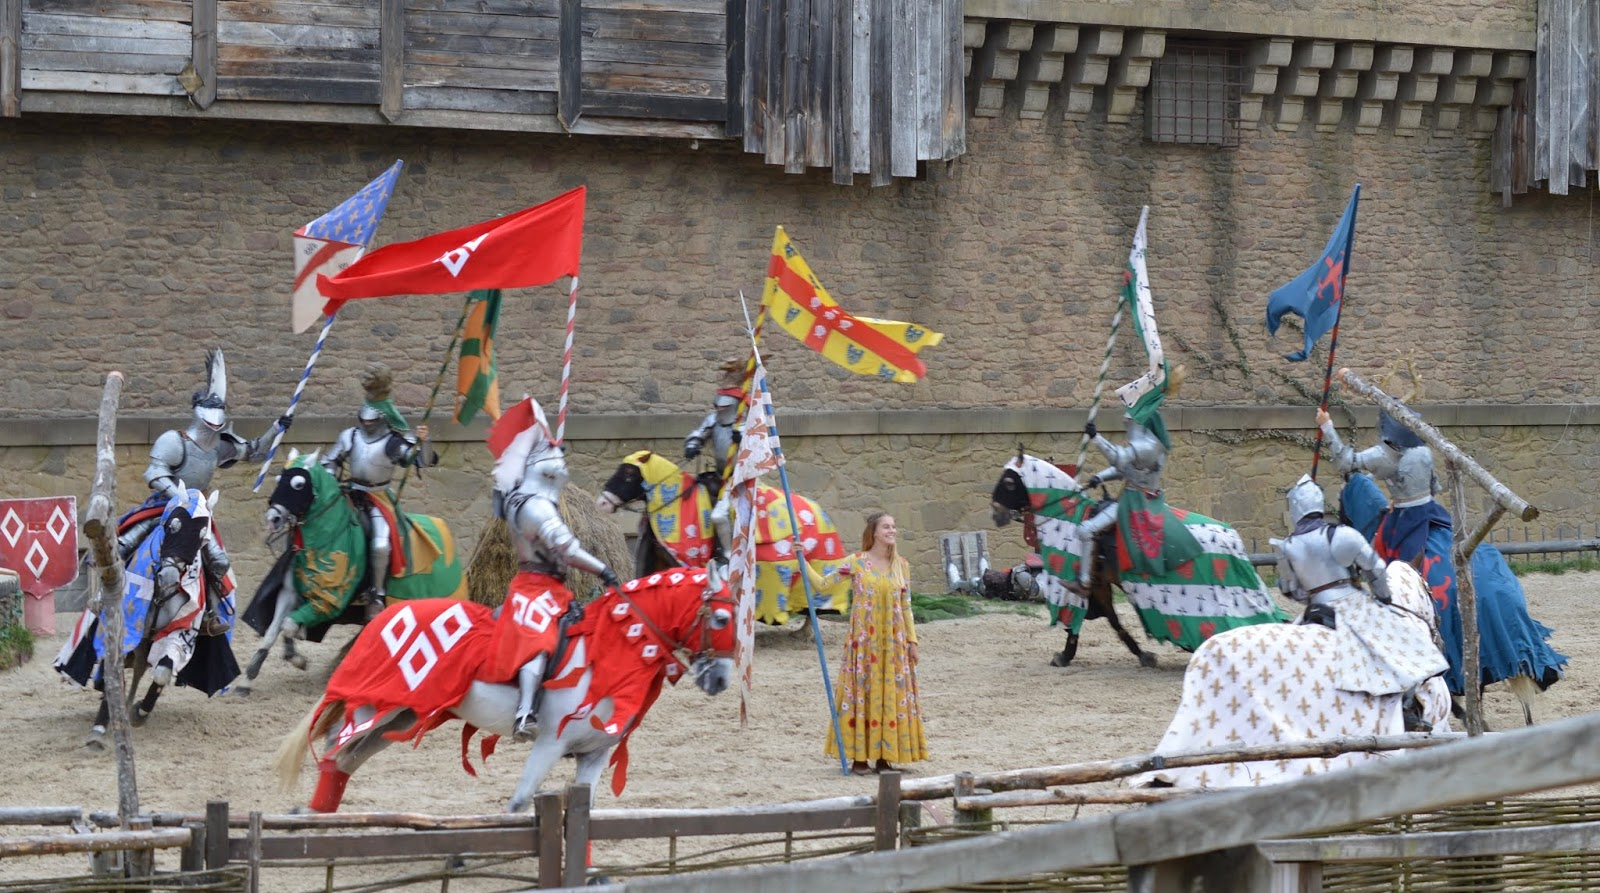 Puy du Fou Theme Park, France - Medieval Knights show with horses